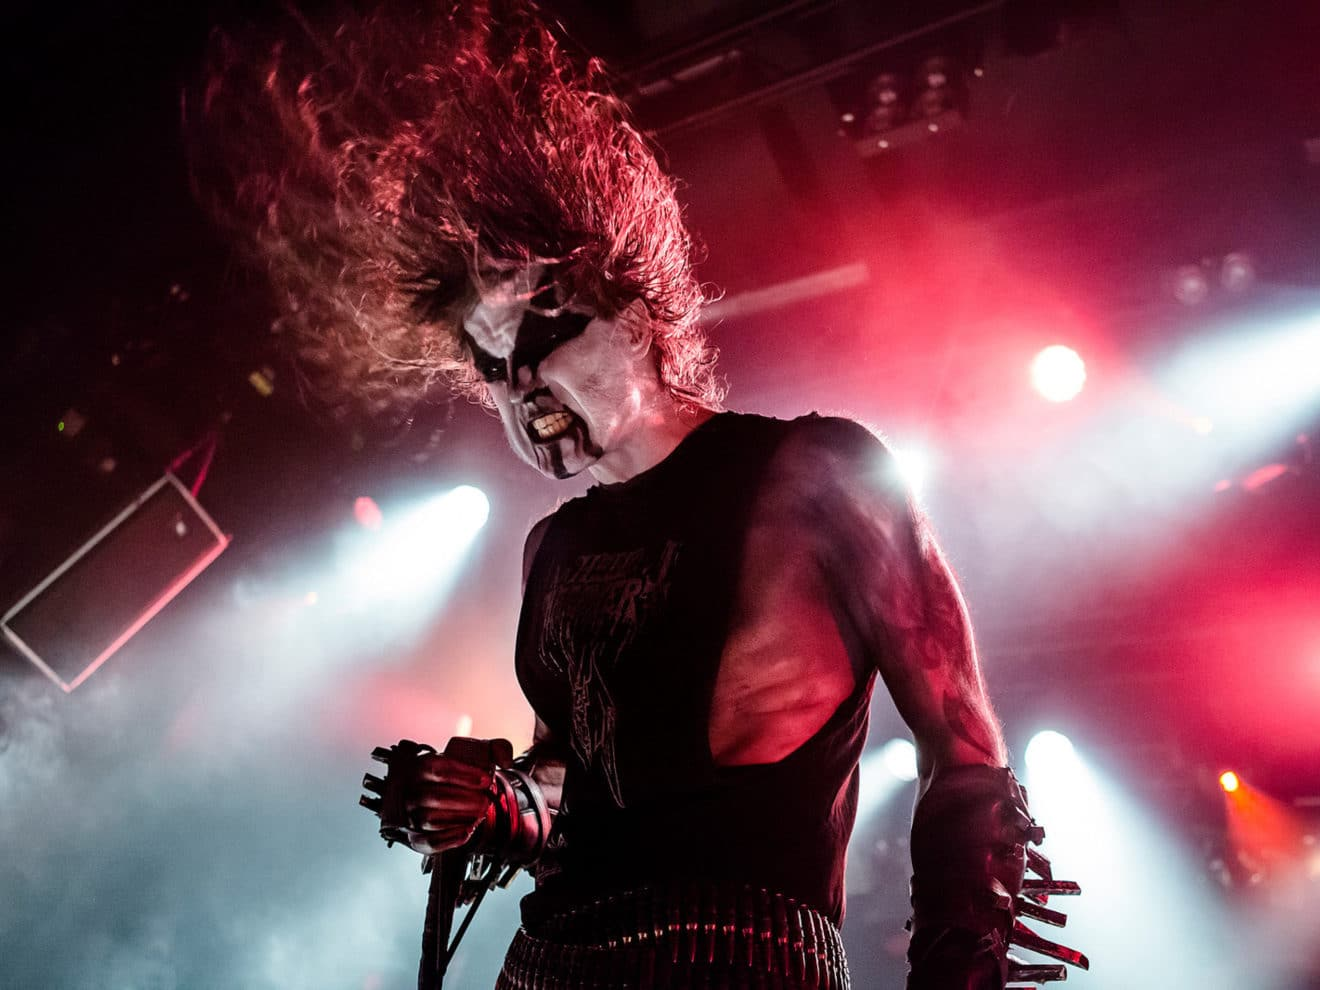 The Cutting Edge: Black Metal and the Refusal of Modernity